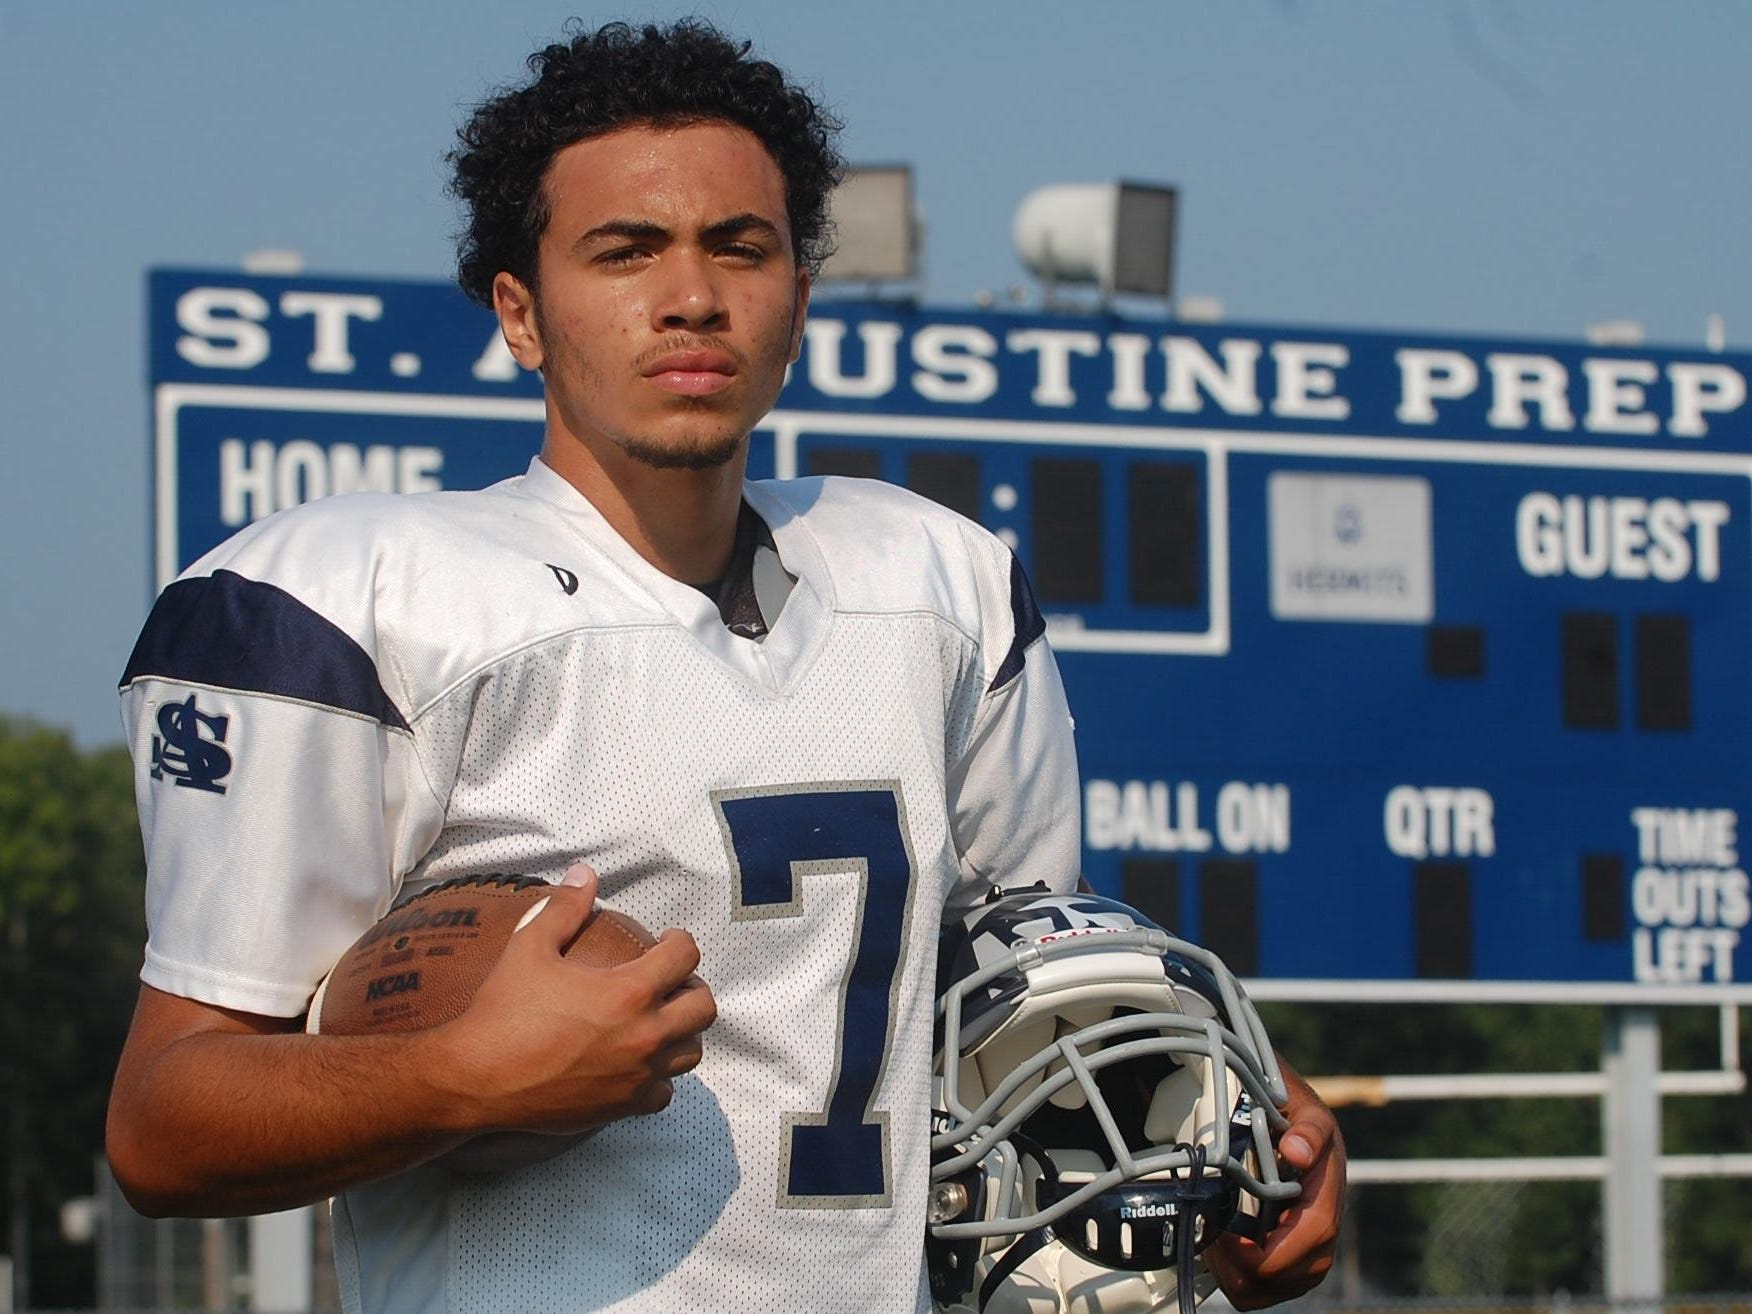 In his third year as the starting quarterback, expectations are high for St. Augustine senior Jose Tabora.